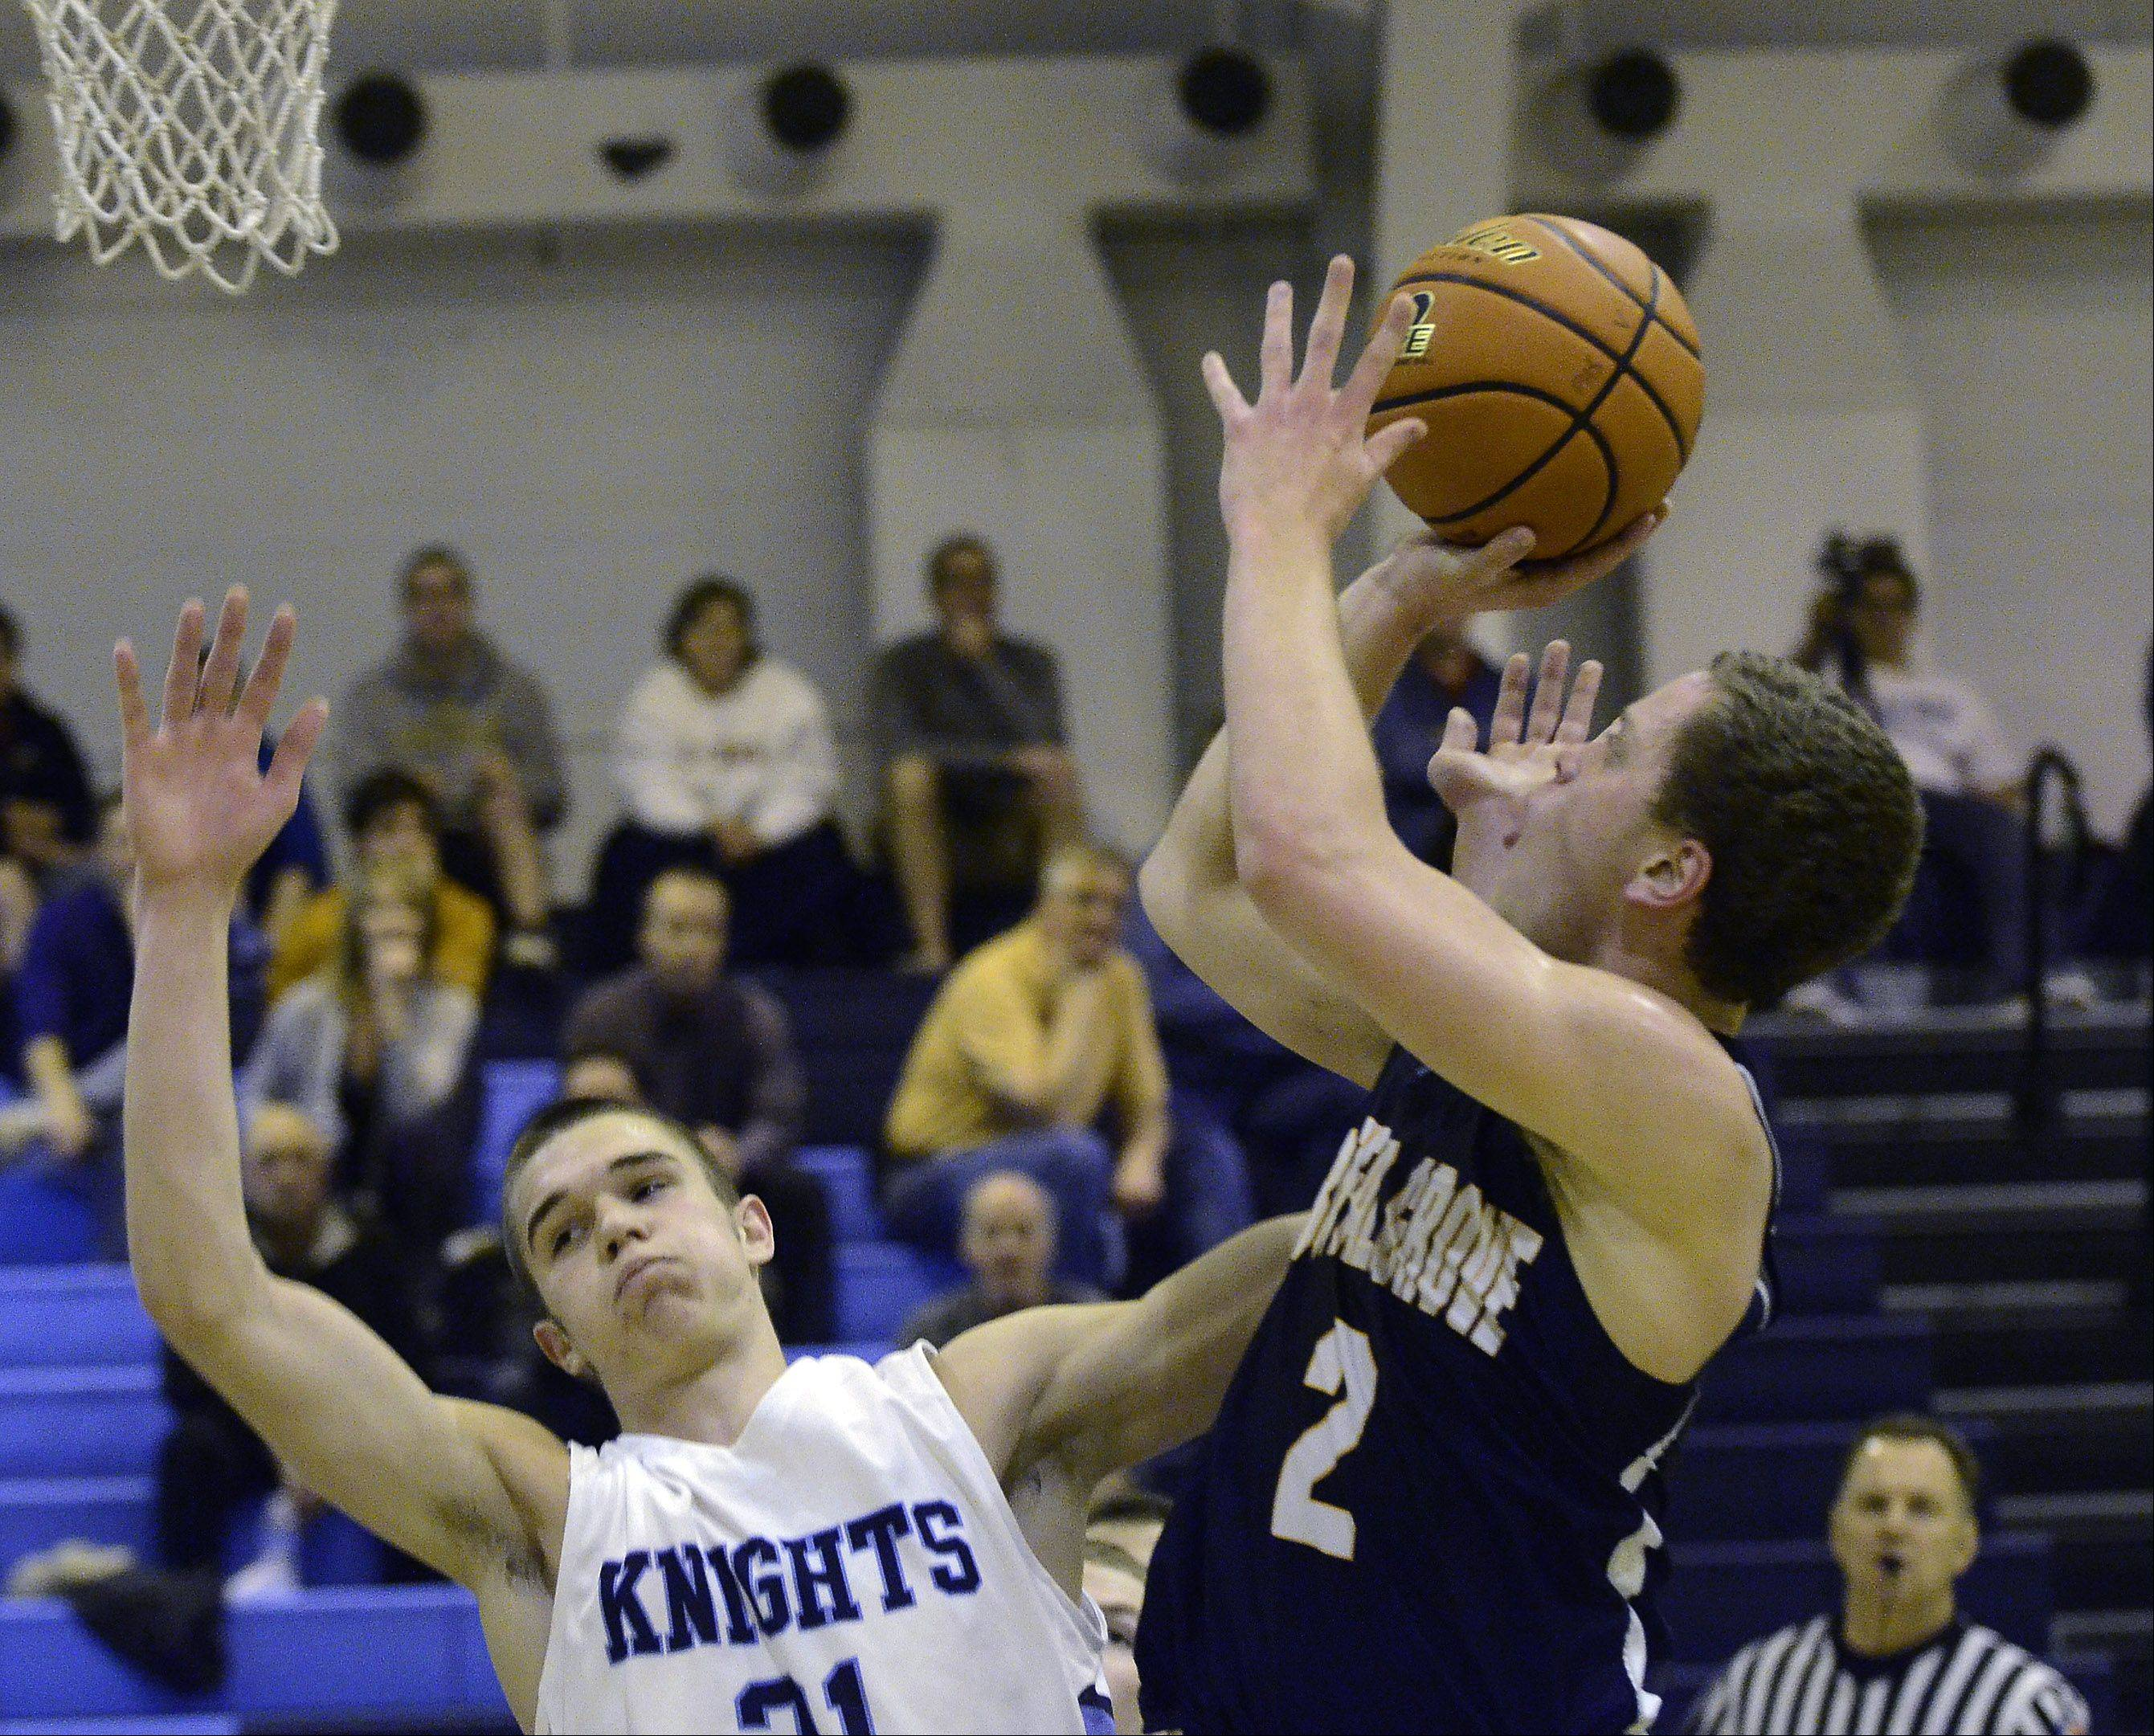 Prospect's Jake Young (31) goes down as Buffalo Grove's Luke Potnick makes a shot Friday night at Prospect.